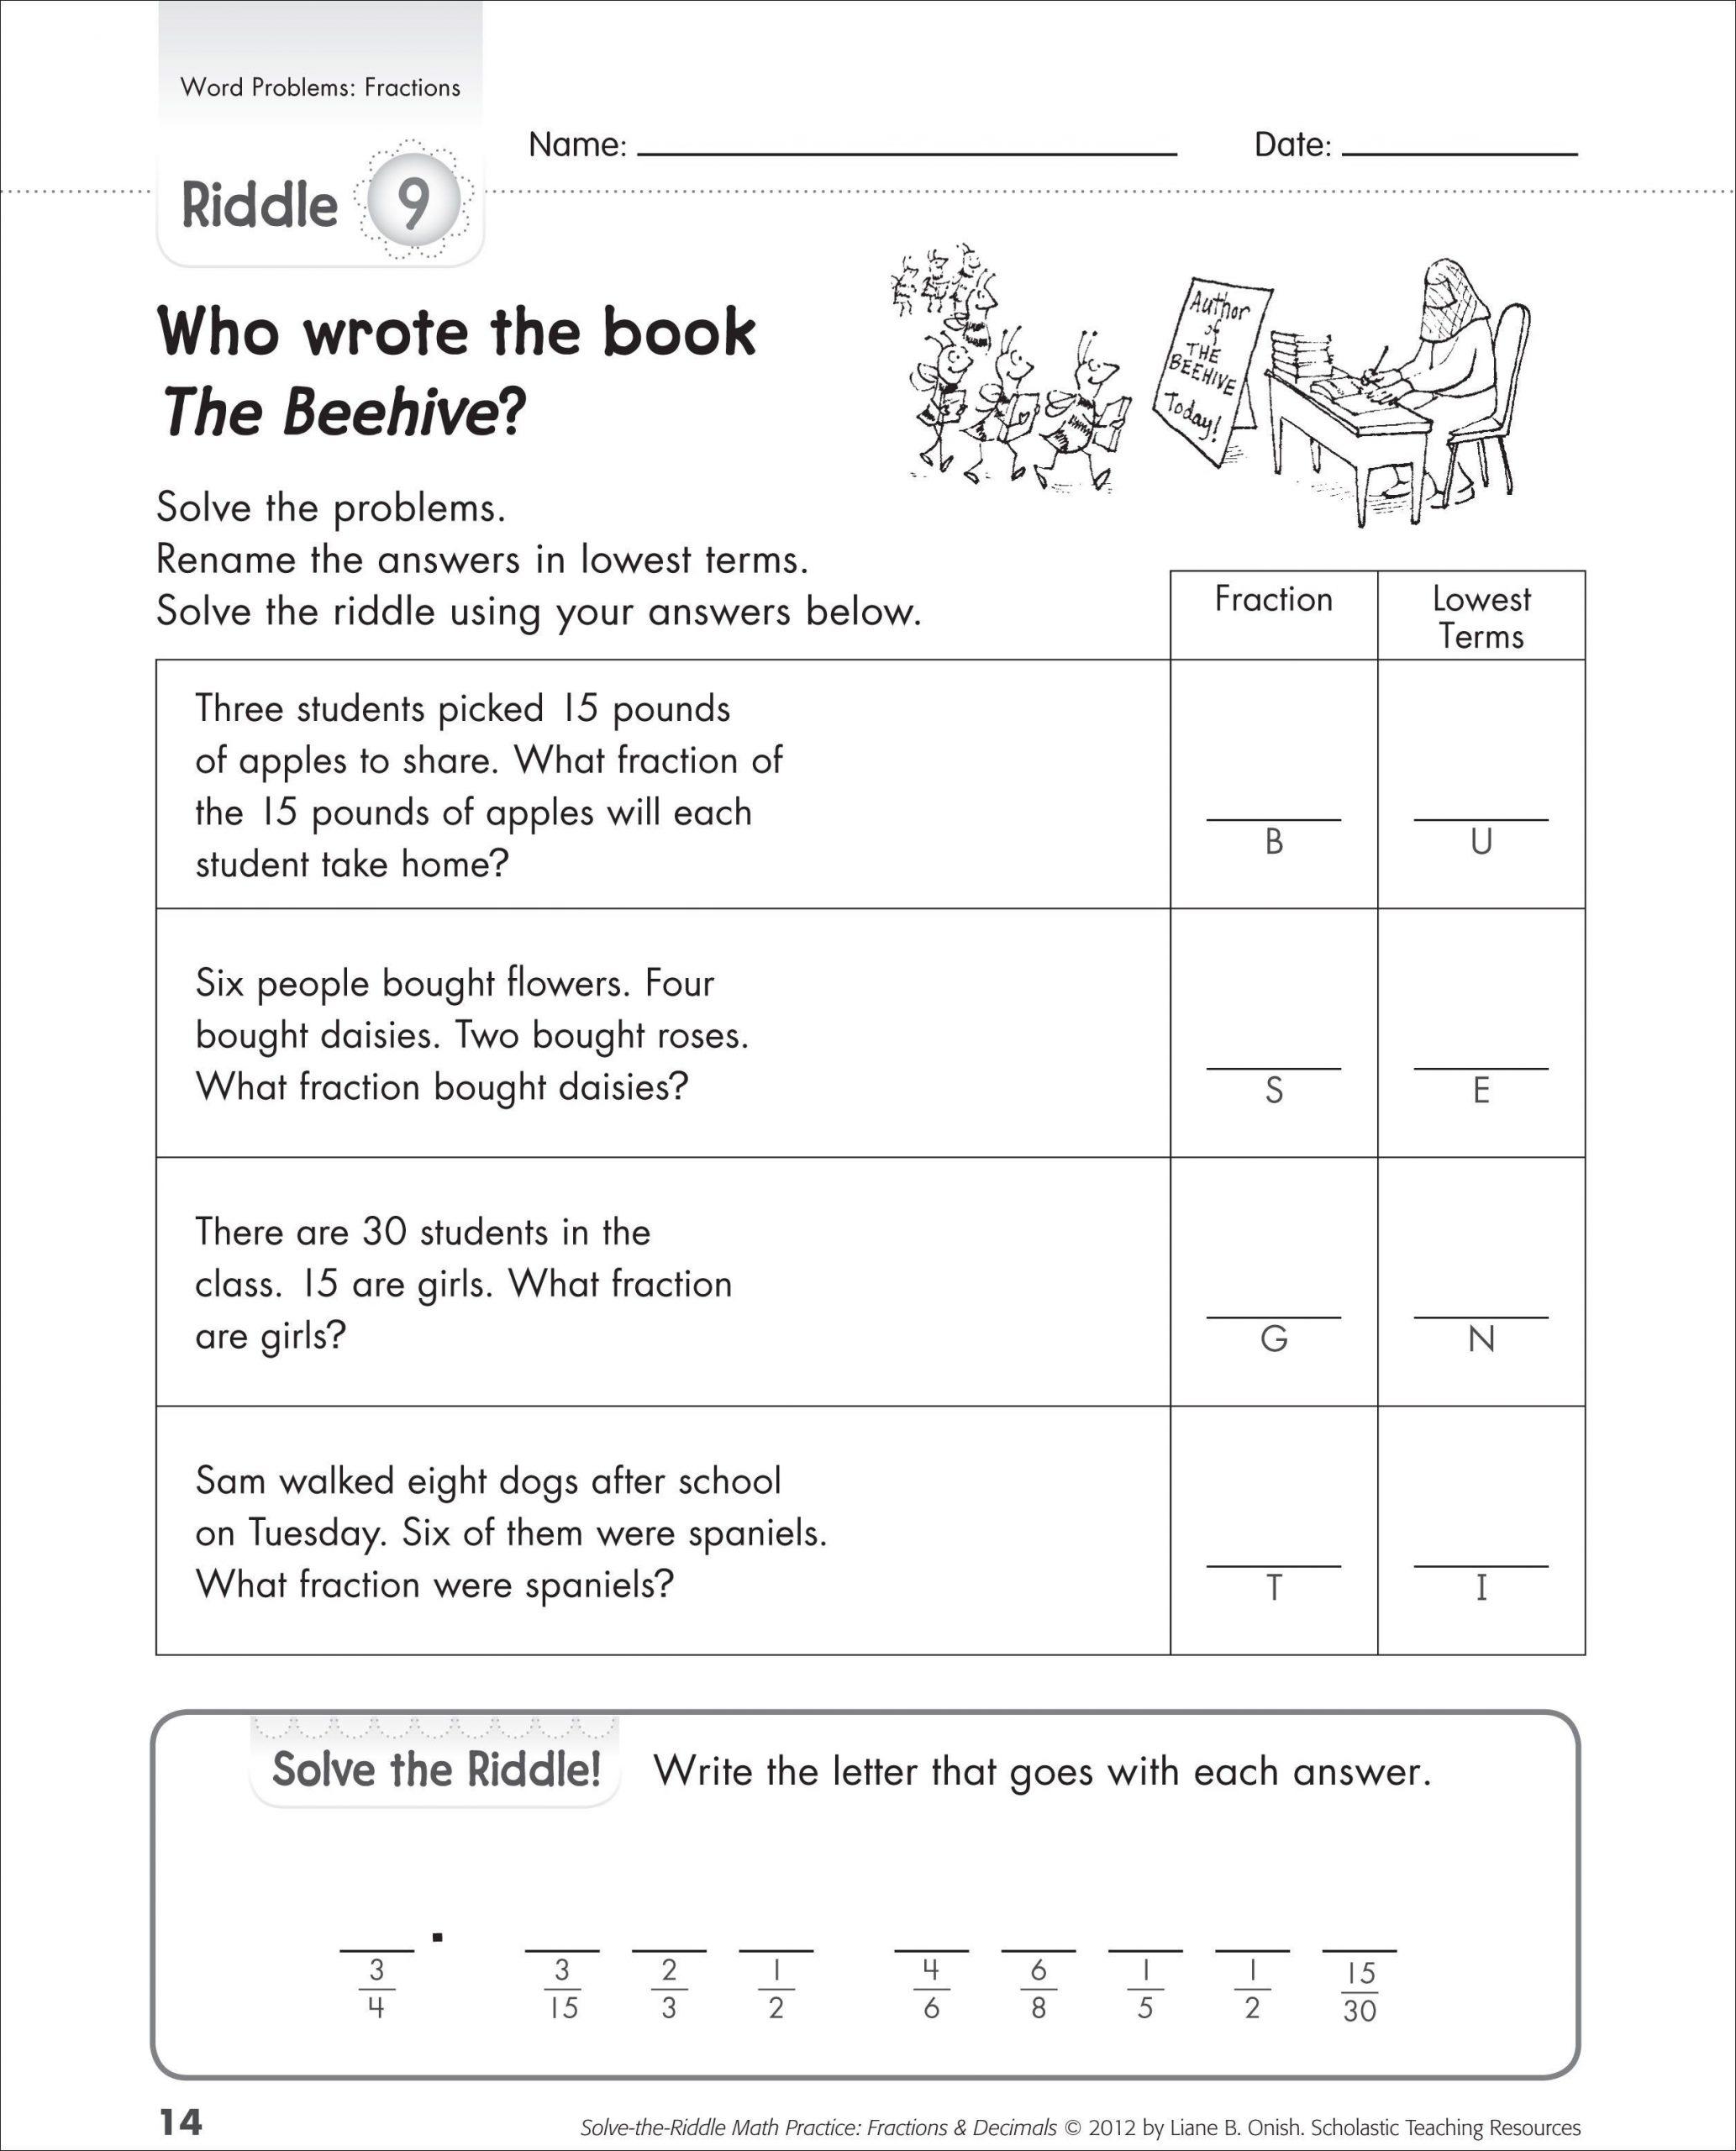 Help Your Kids Learn Fractions with These Word Problems